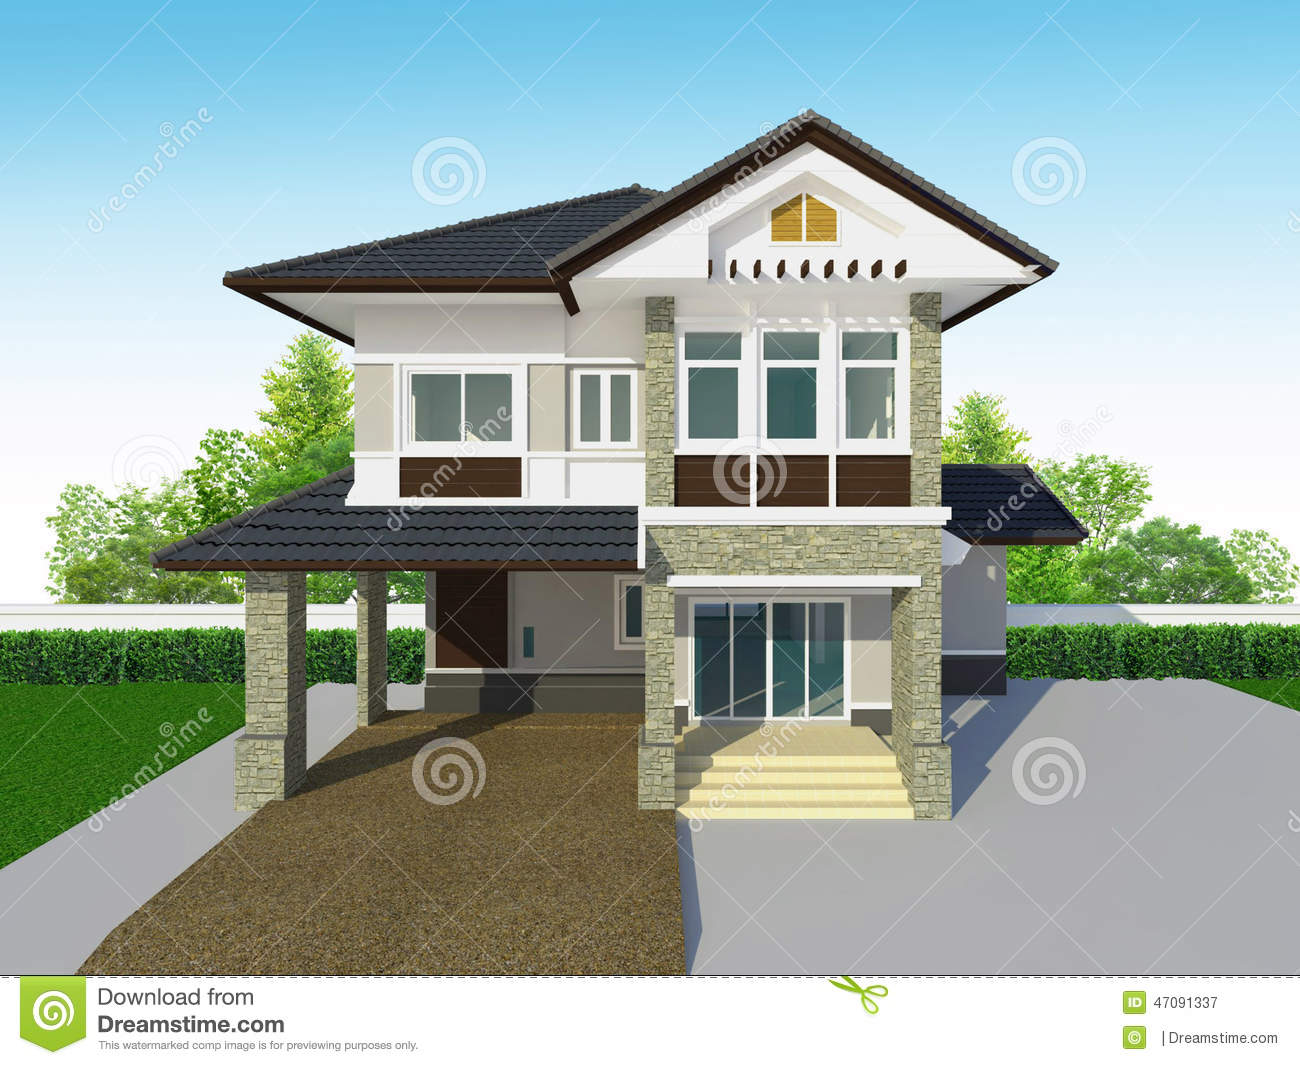 Houses Exterior Stock Image Image Of House Storey Houses 47091337